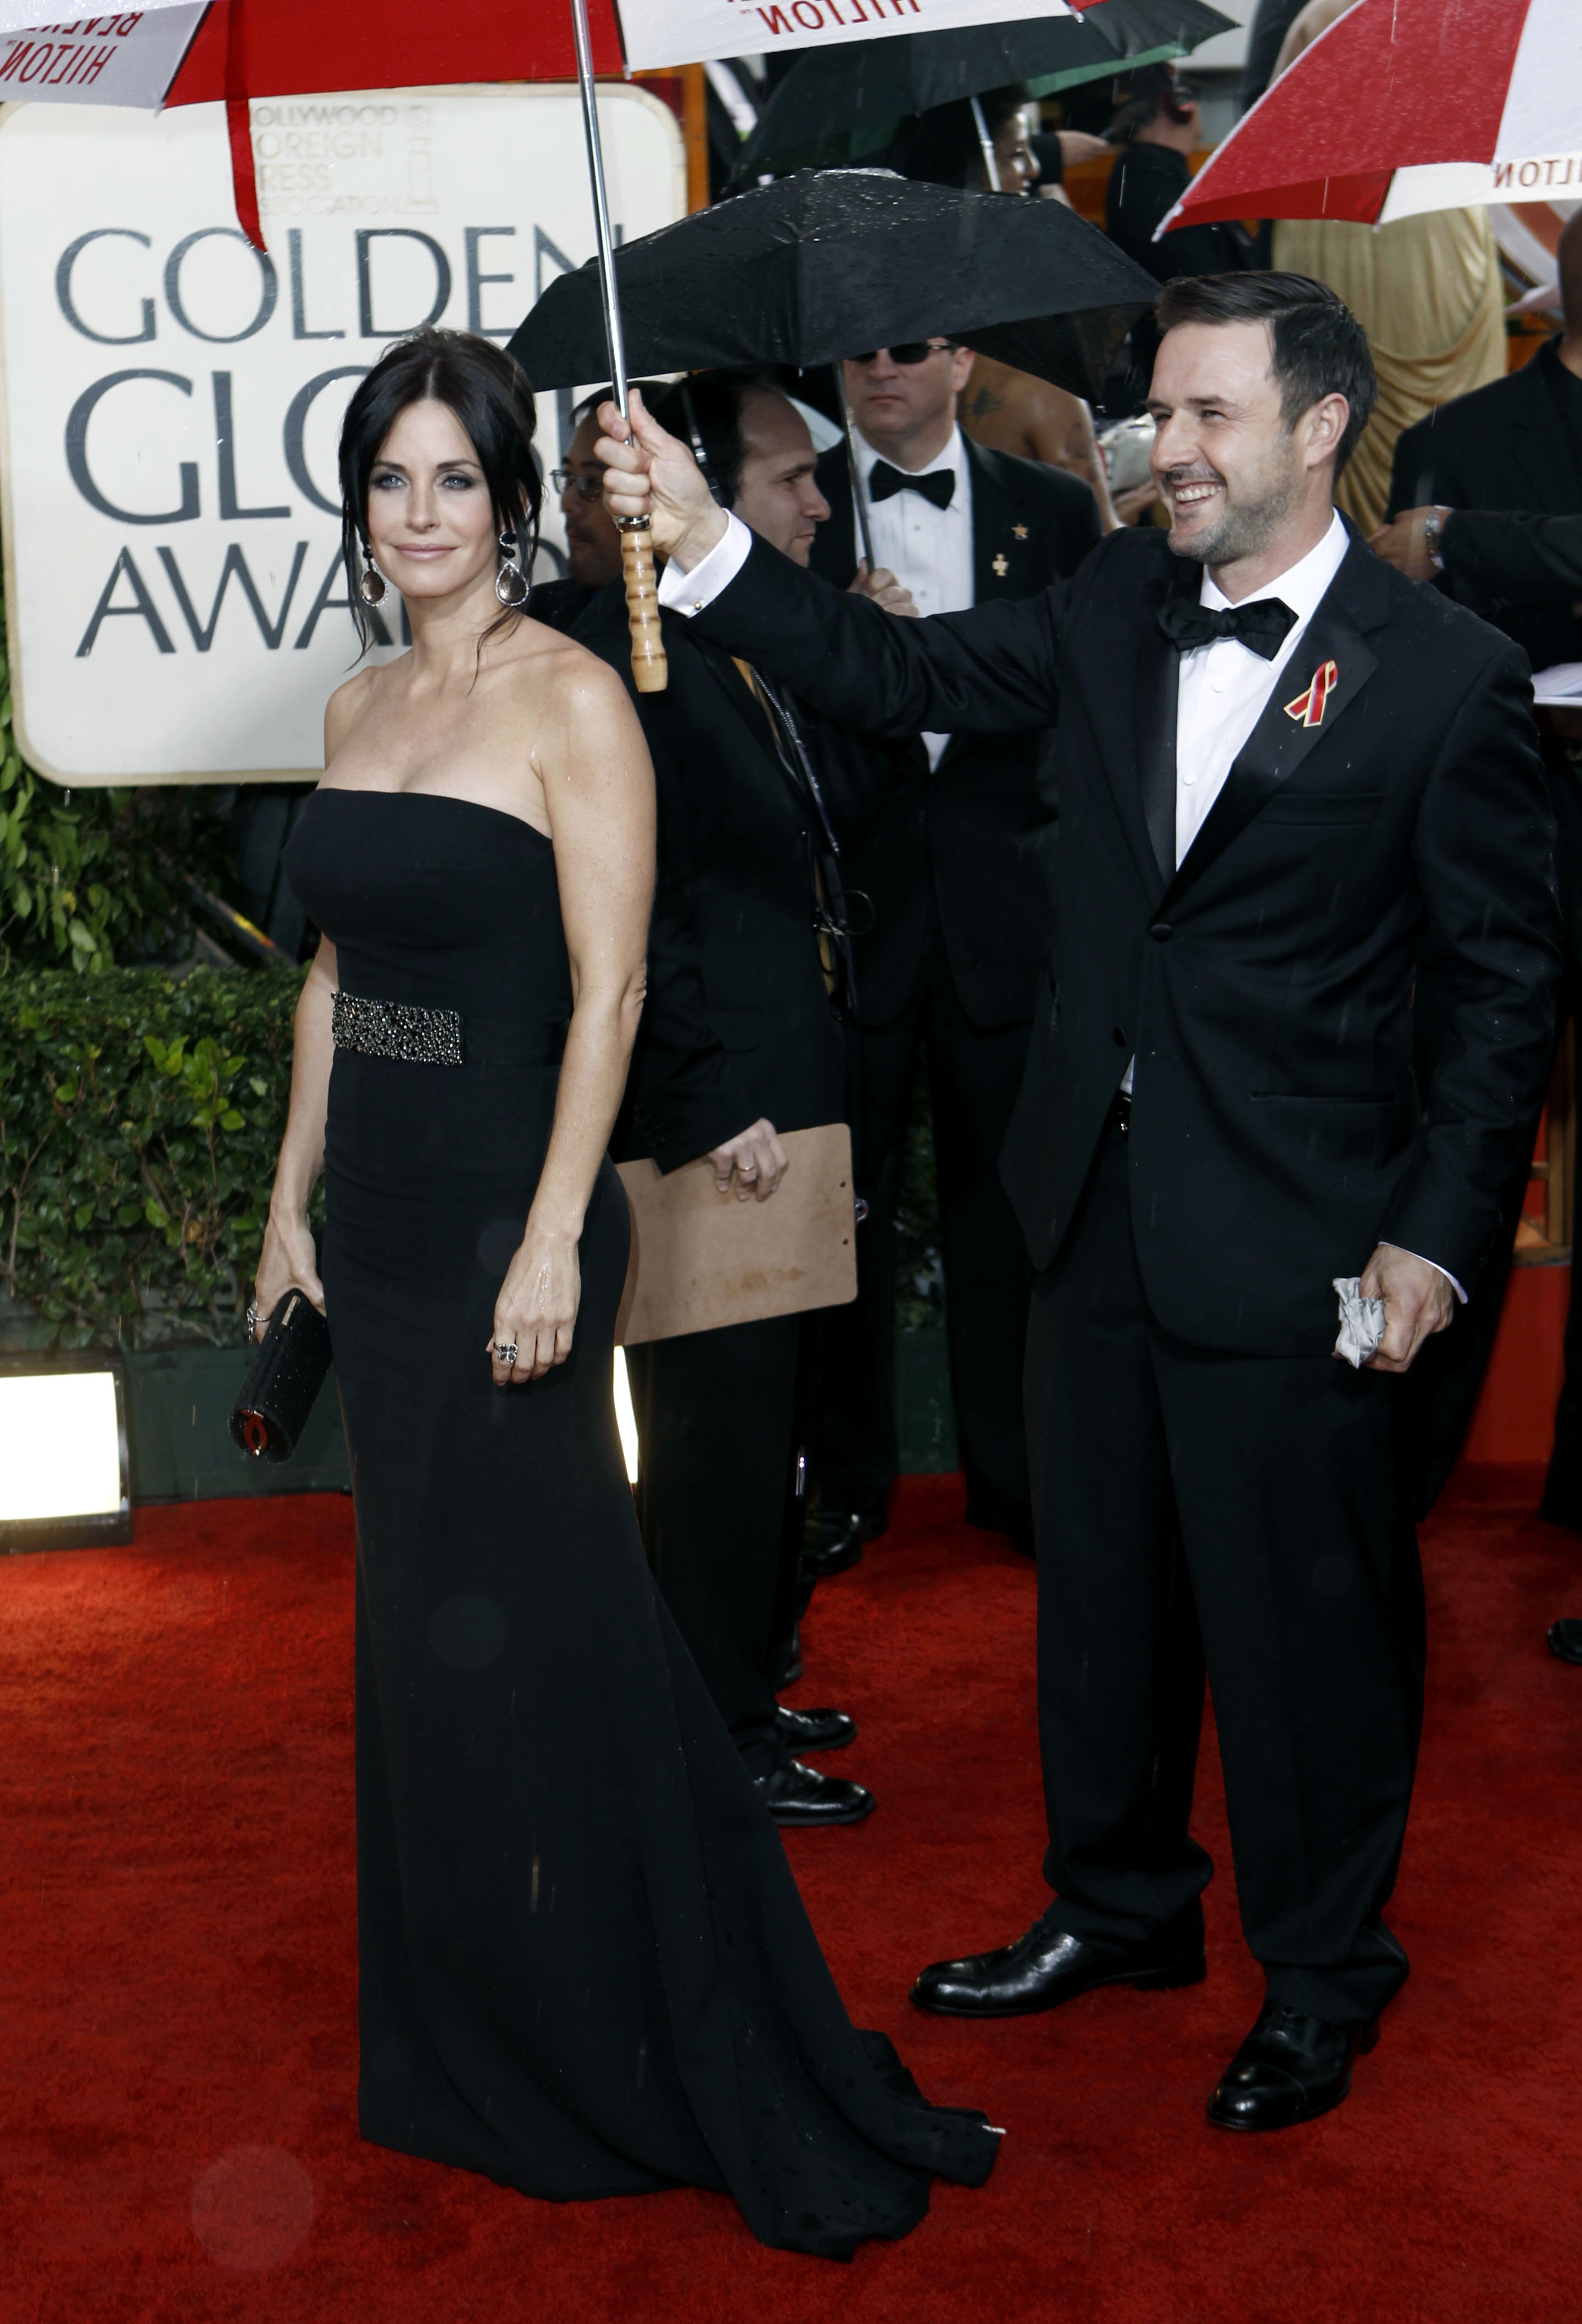 77685_Celebutopia-Courteney_Cox_arrives_at_the_67th_Annual_Golden_Globe_Awards-04_122_88lo.jpg